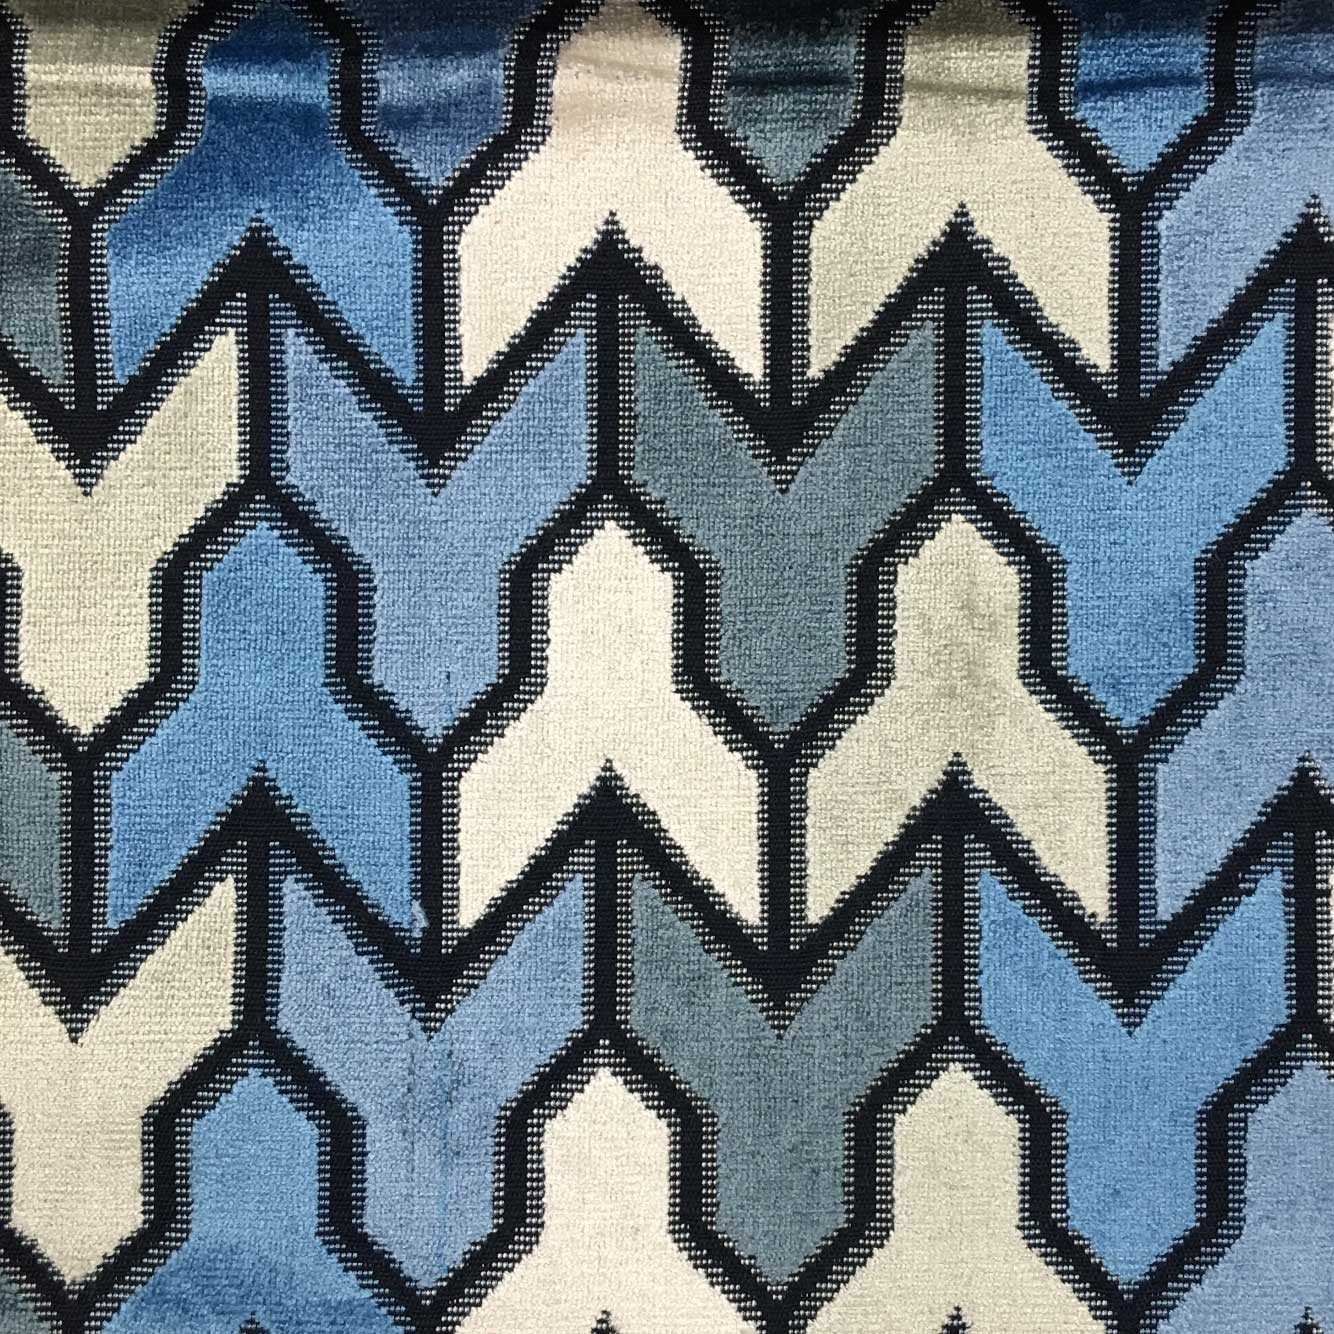 Upholstery fabric geometric design fabric home decor aqua blue -  Rocket Geometric Pattern Cut Velvet Upholstery Fabric By The Yard Available In 14 Colors